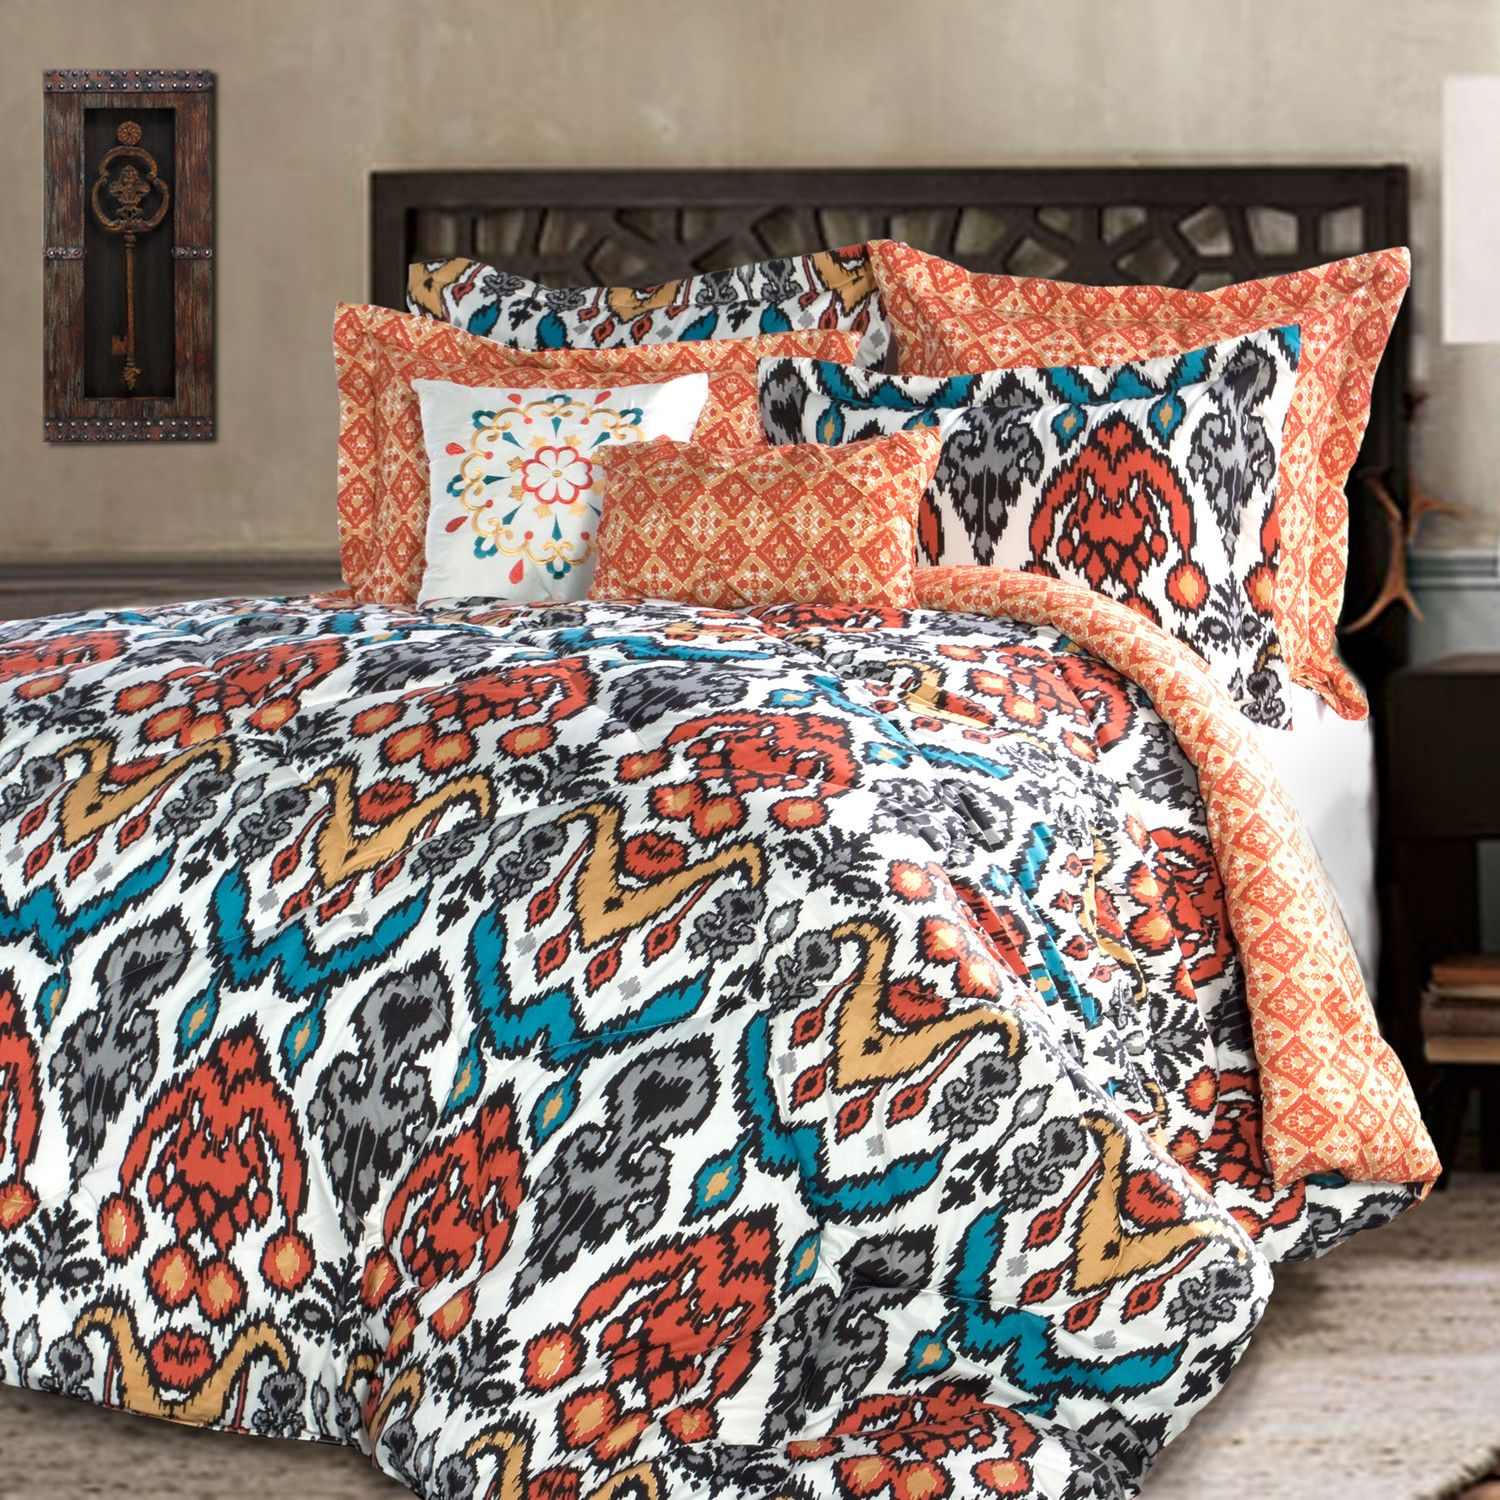 info twin set comforter king tan rust vanegroo and sets